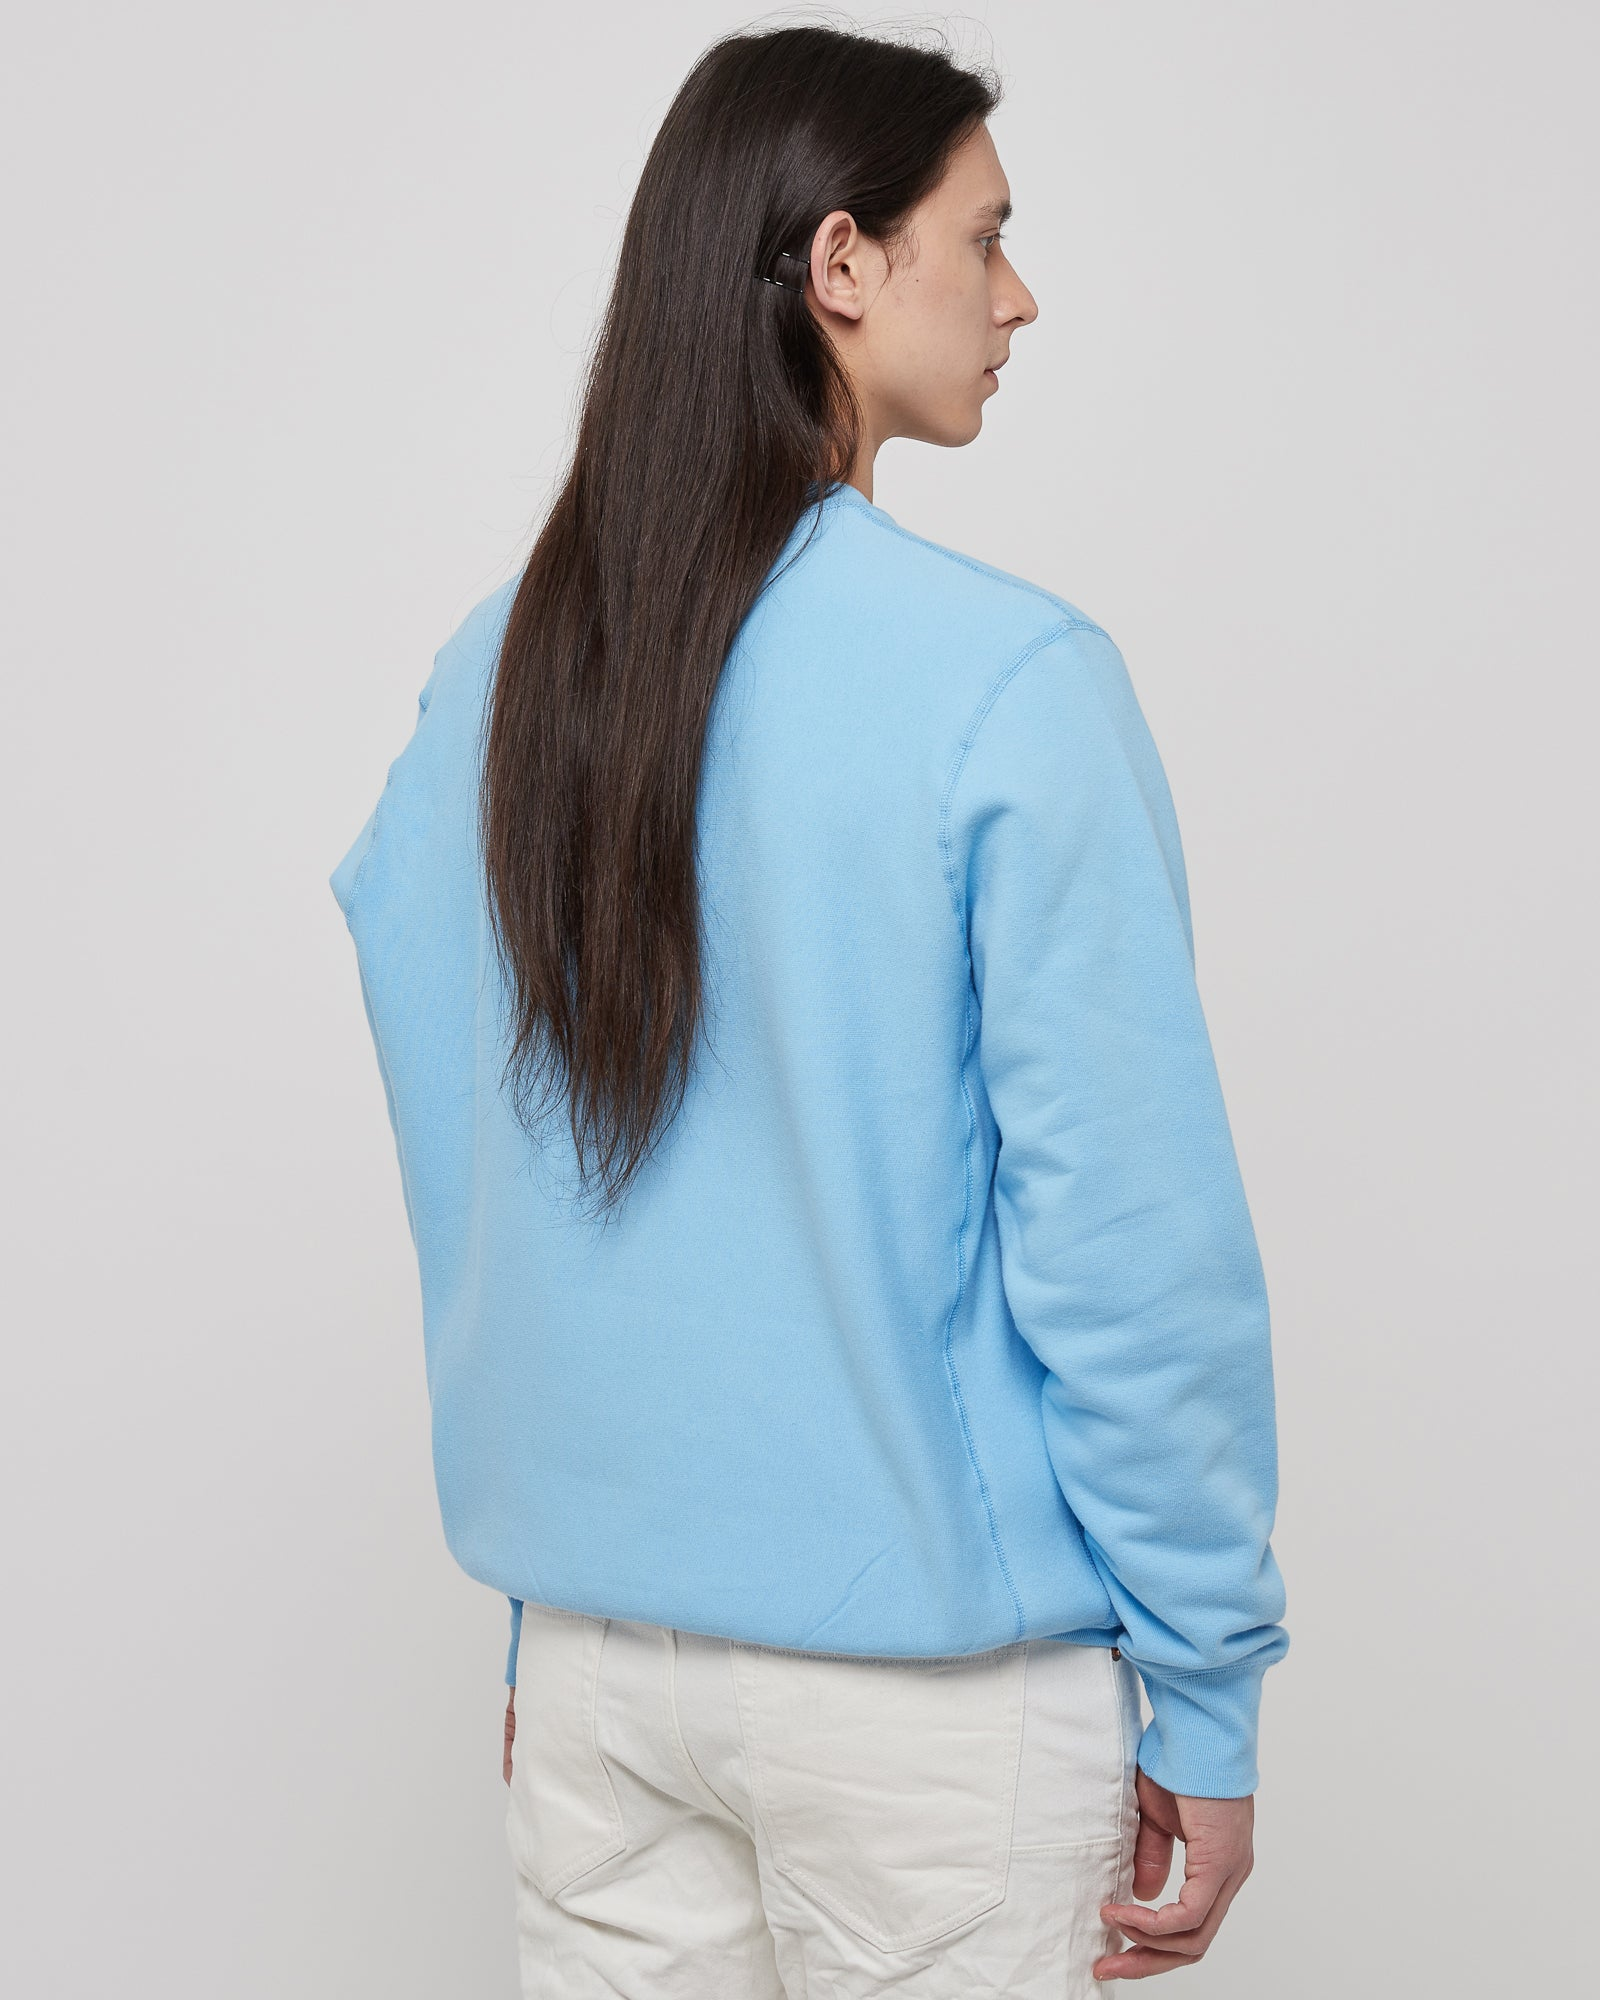 Lover Pullover Crewneck in Baby Blue & Black